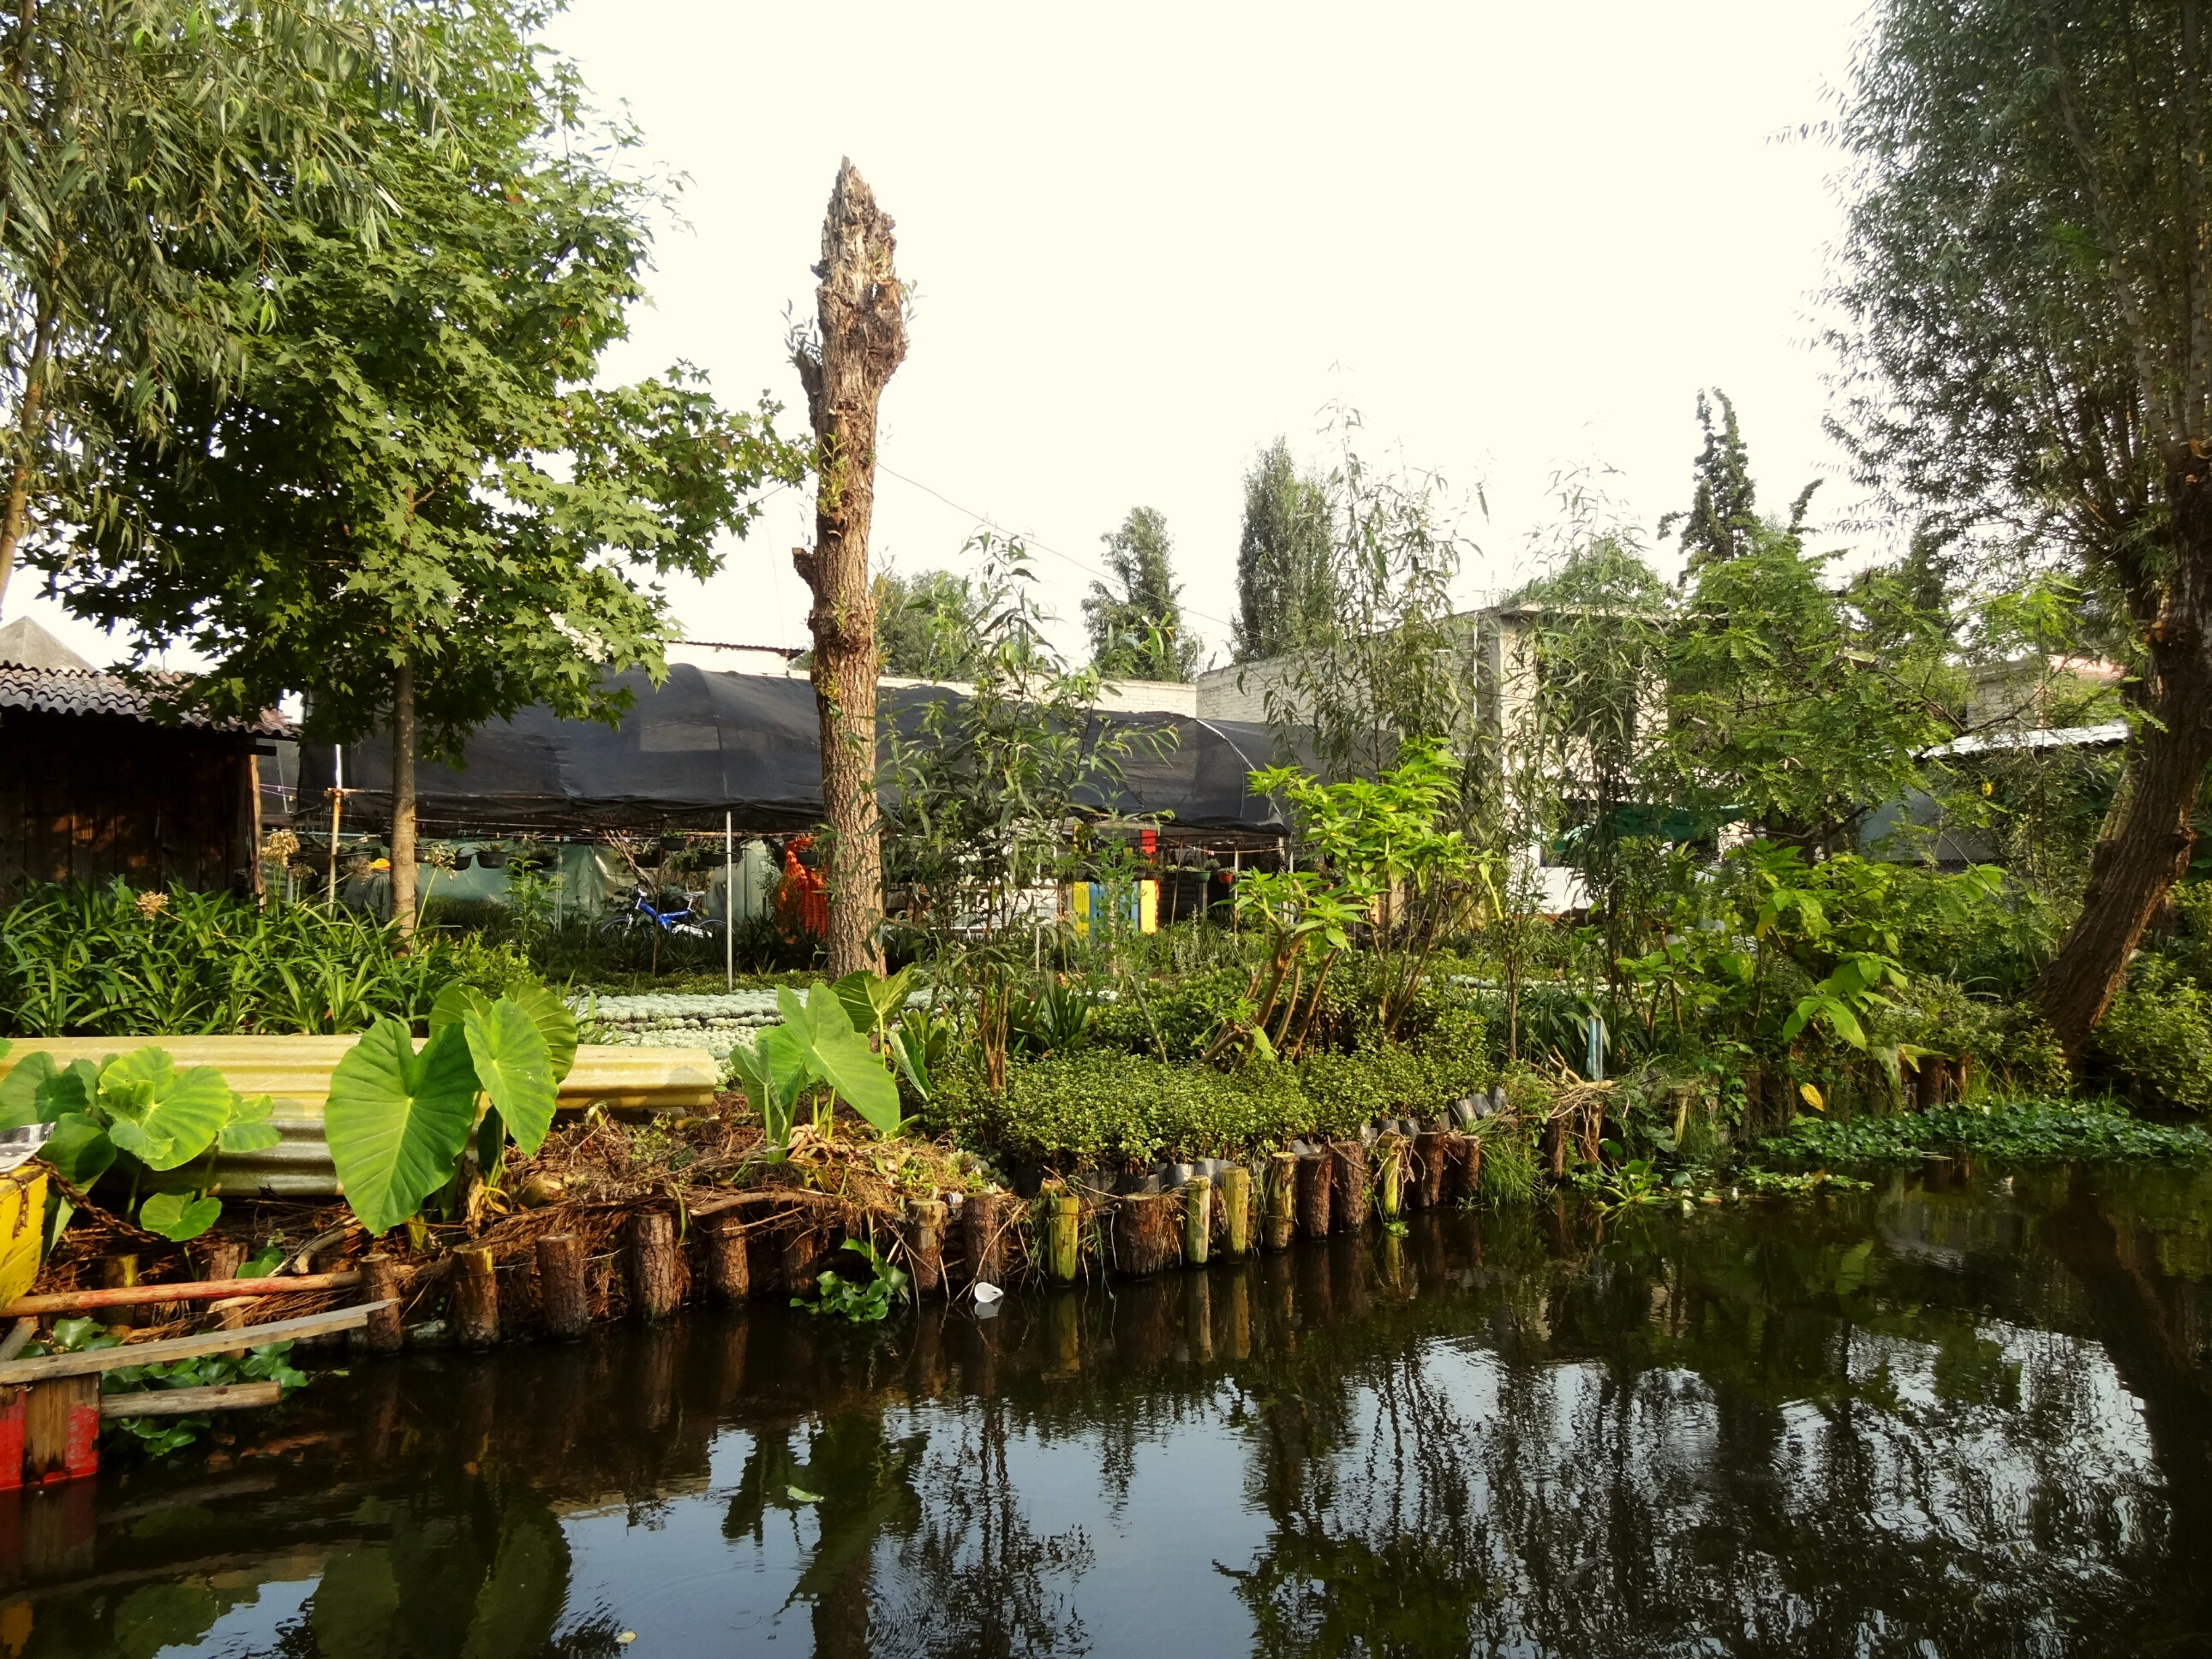 Chinampas The Floating Gardens Of A Sinking City Field Study Of The World